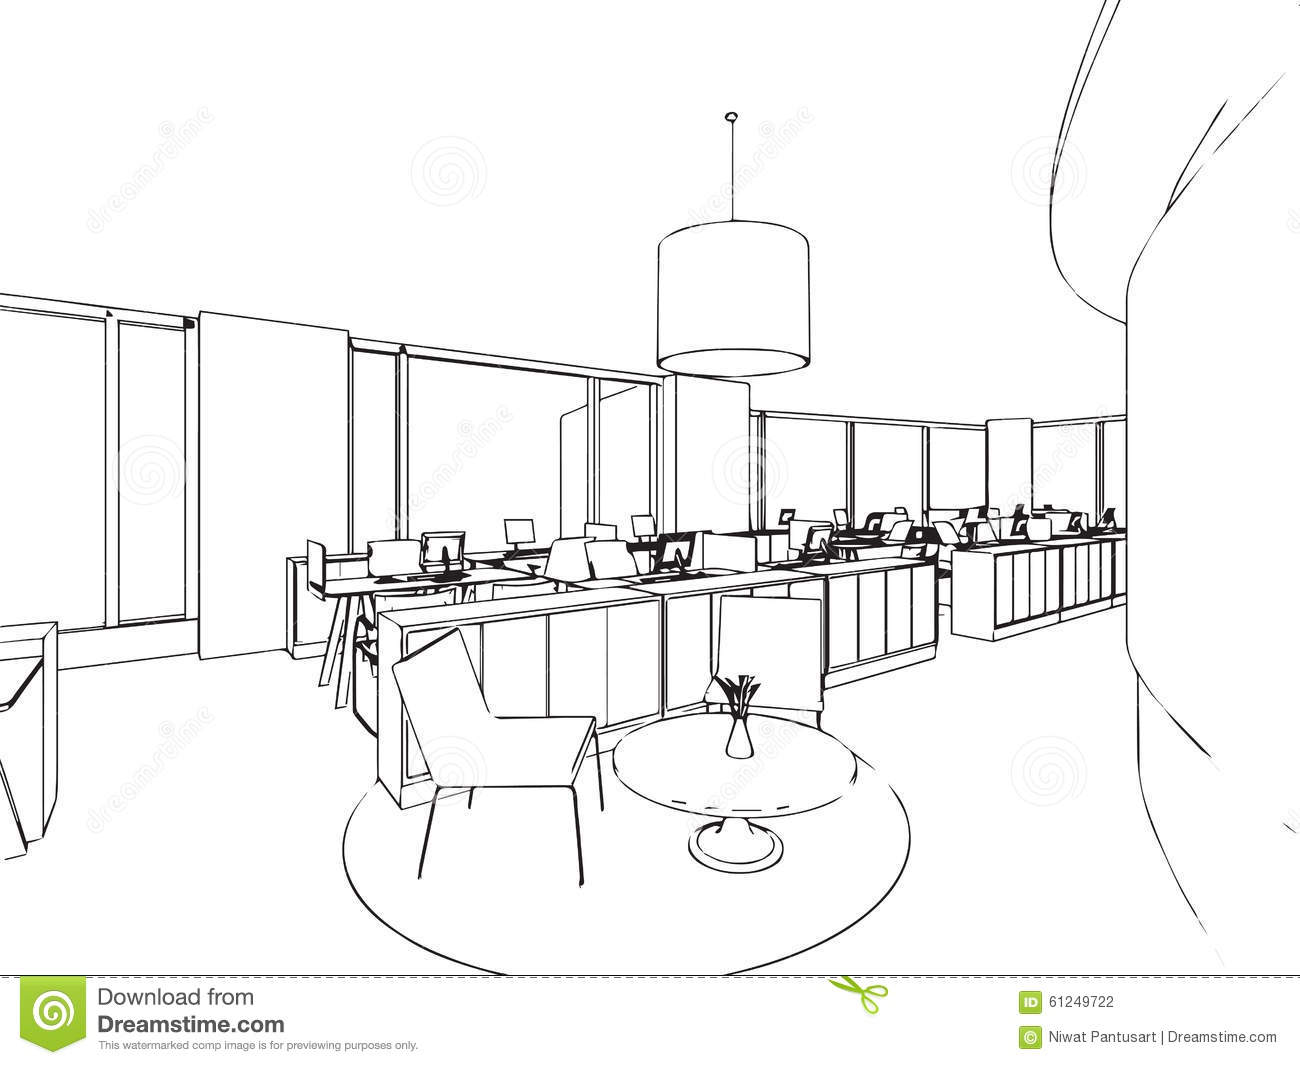 croquis int rieur de dessin d 39 ensemble de bureau. Black Bedroom Furniture Sets. Home Design Ideas